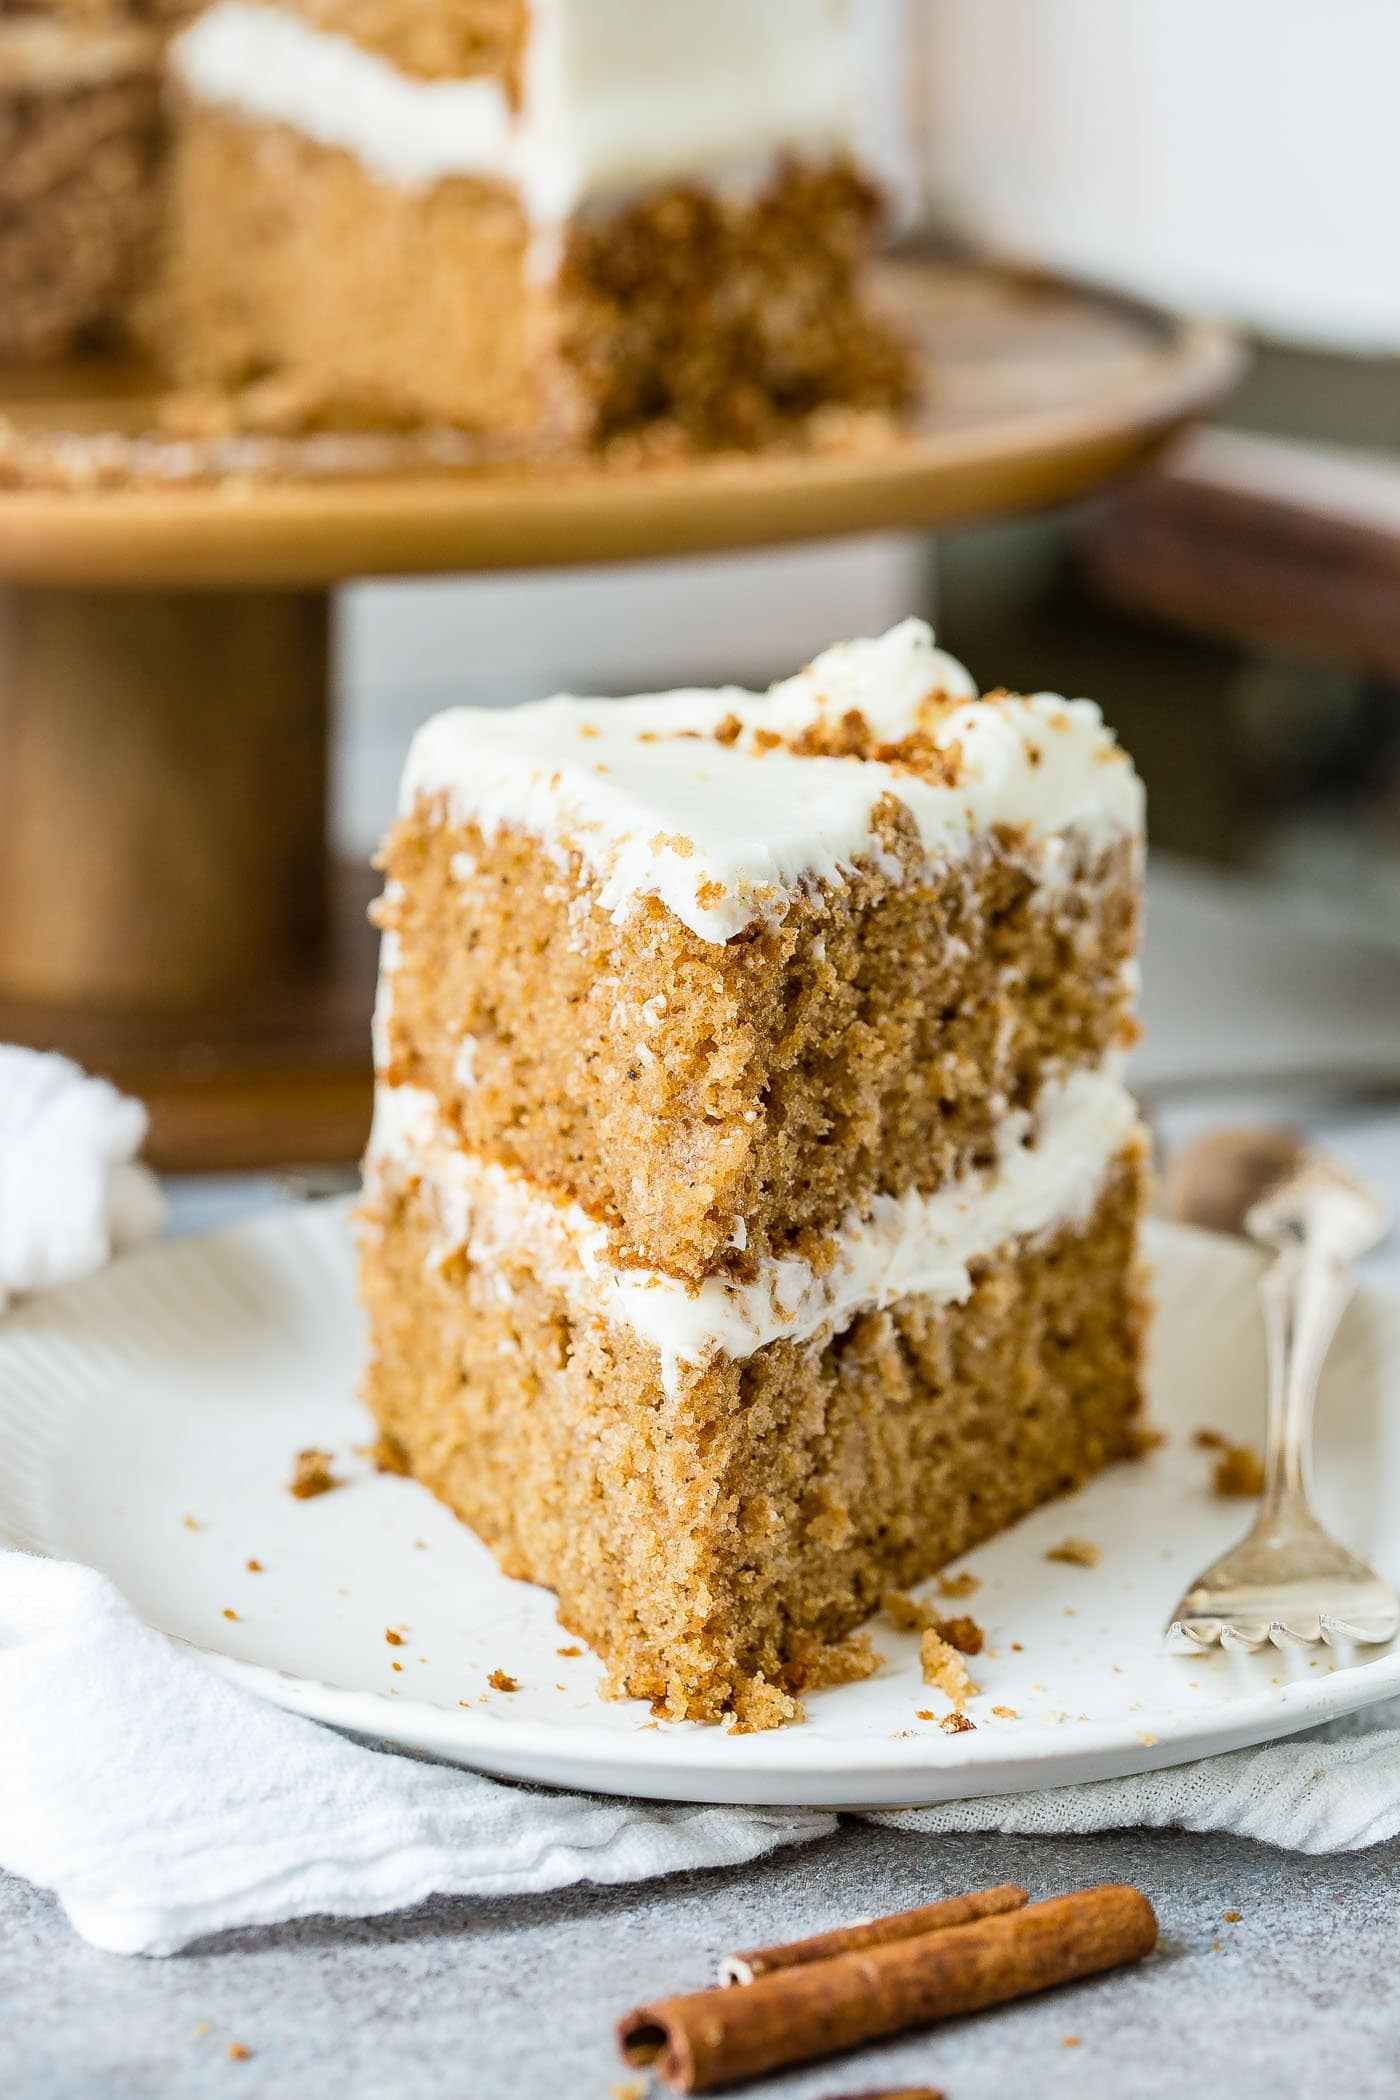 A slice of two layer spice cake with cream cheese frosting. It is on a white plate with a fork next to the cake. A cake plate with the rest of the cake is in the background.